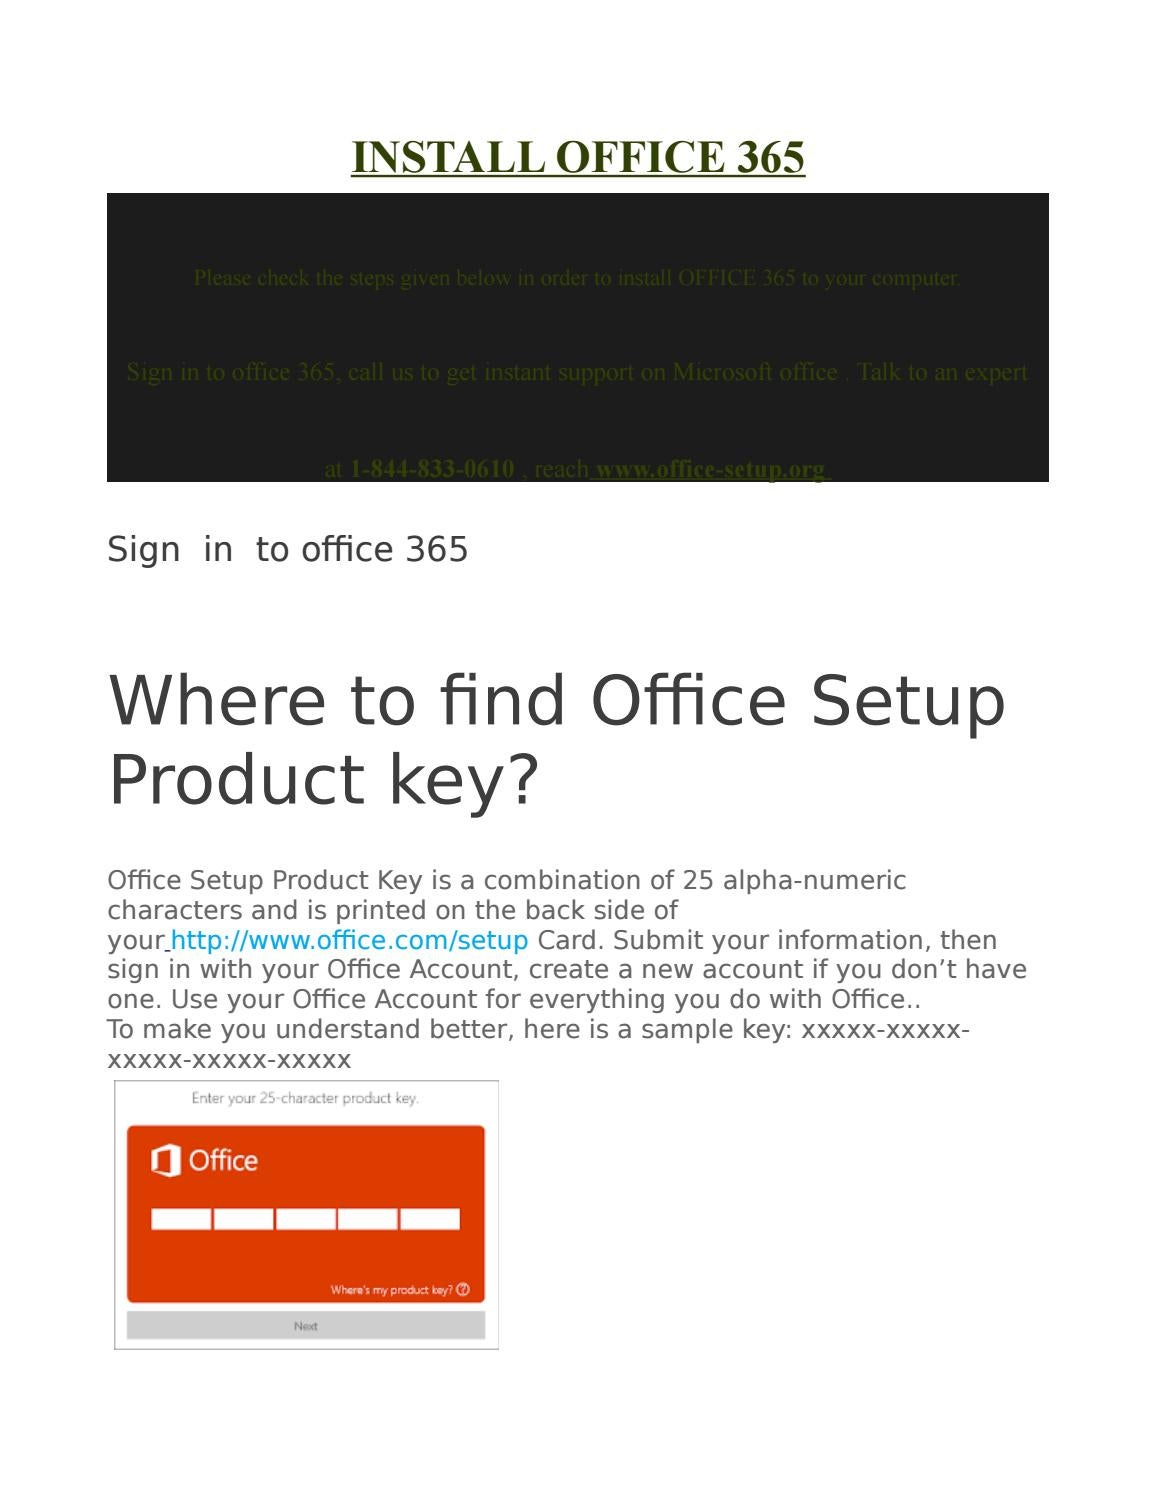 microsoft office 365 25 character product key